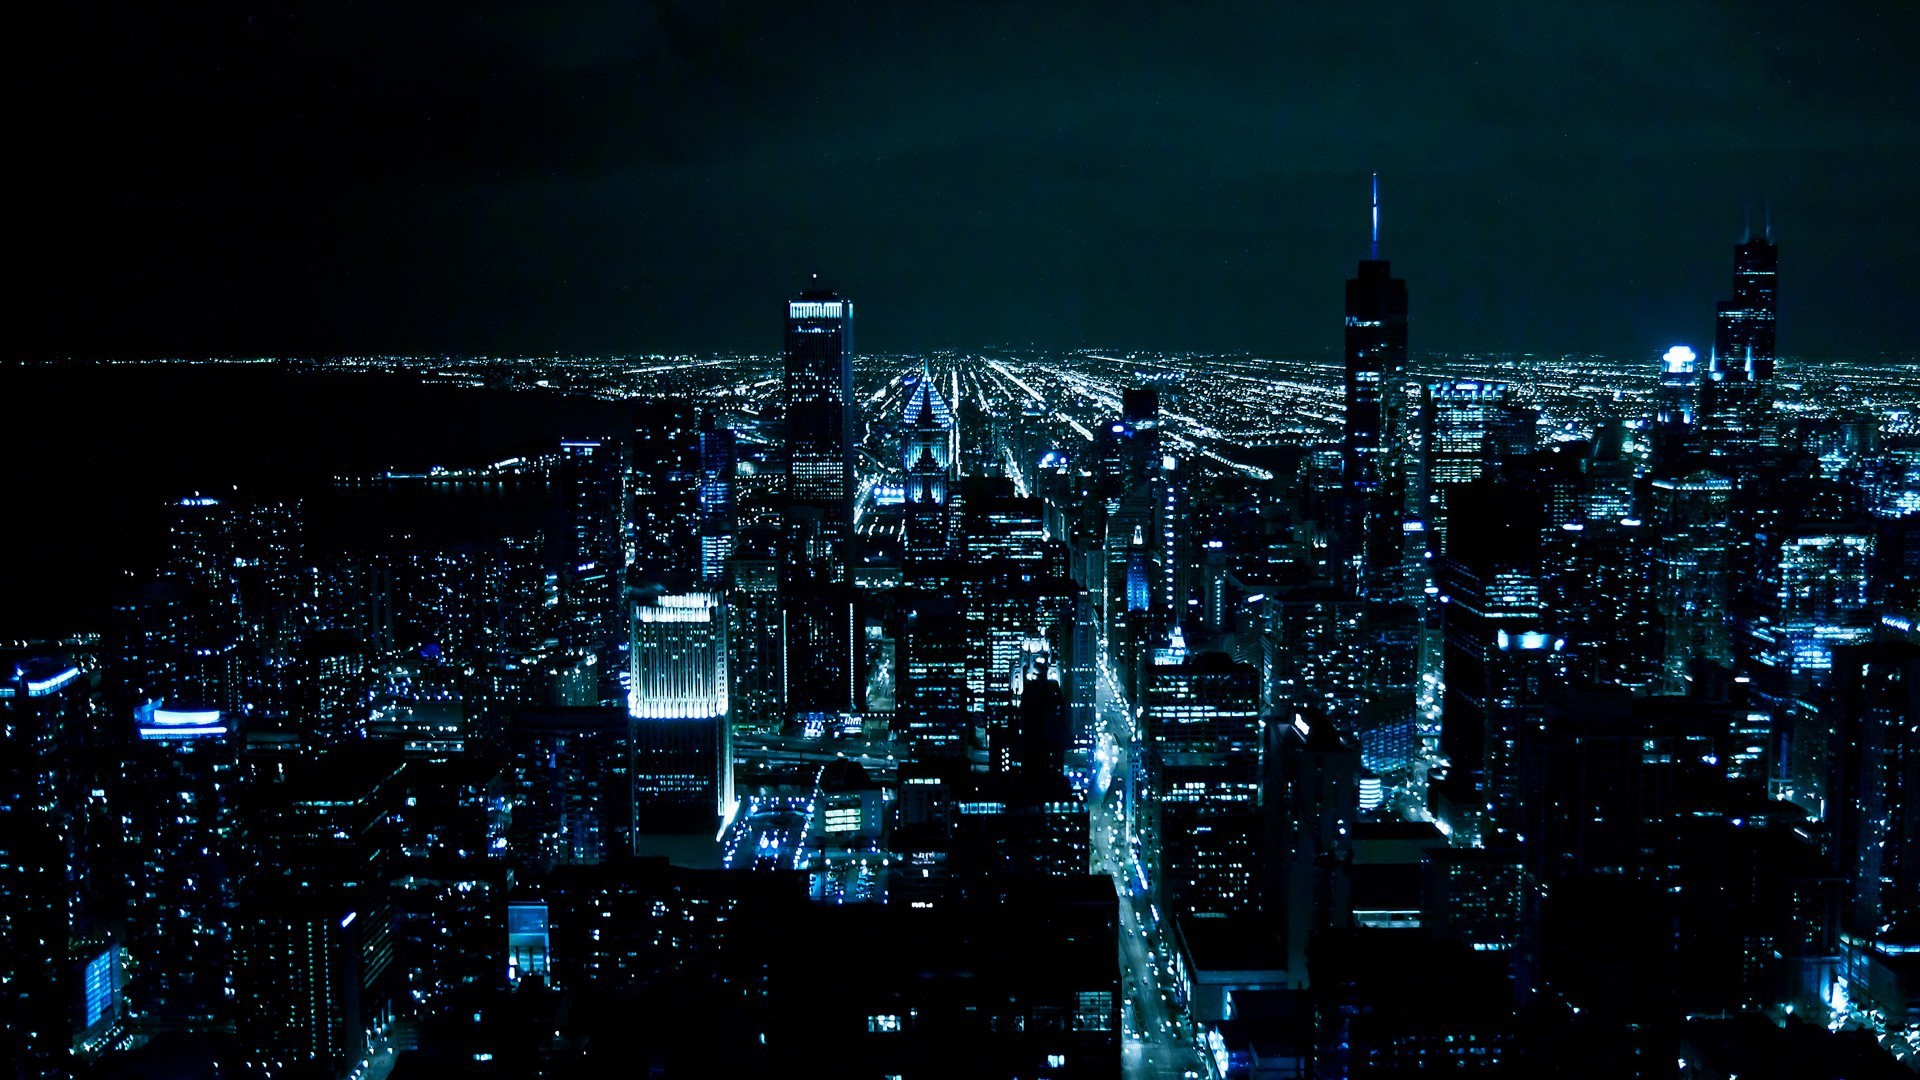 night city wallpapers (67+ images)